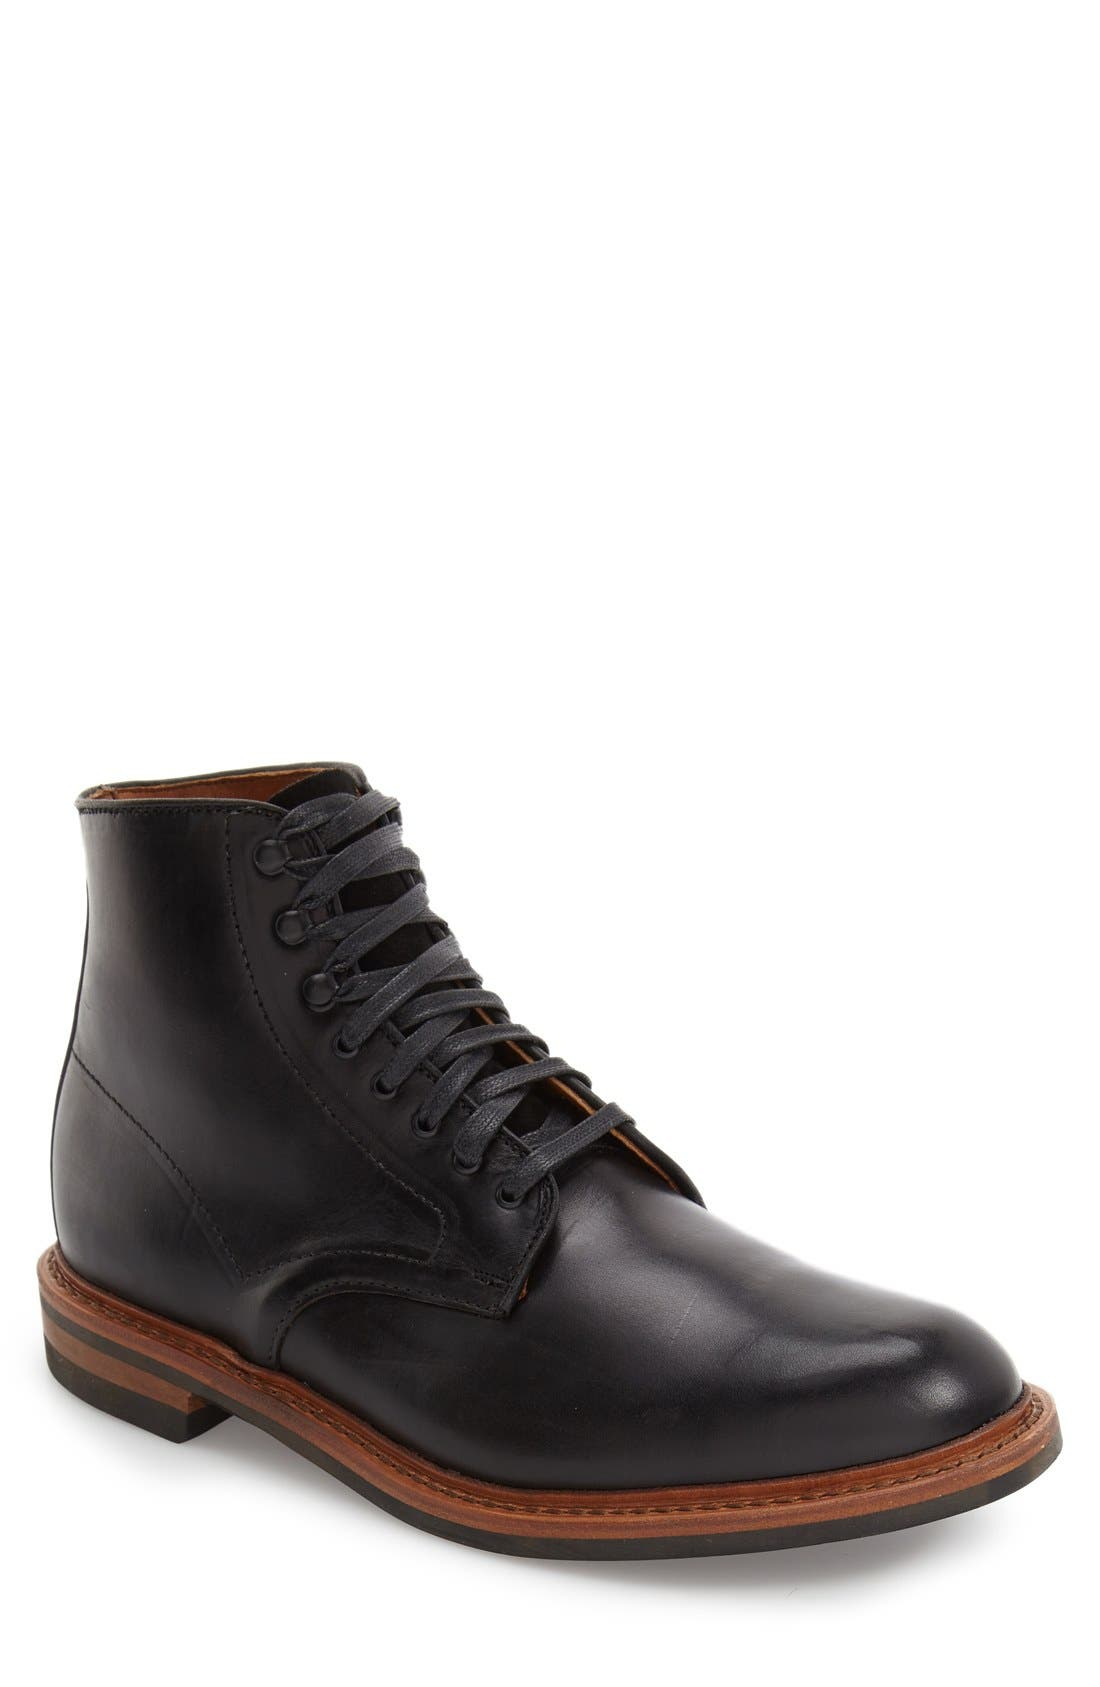 Alternate Image 1 Selected - Allen Edmonds 'Higgins Mill' Plain Toe Boot (Men)